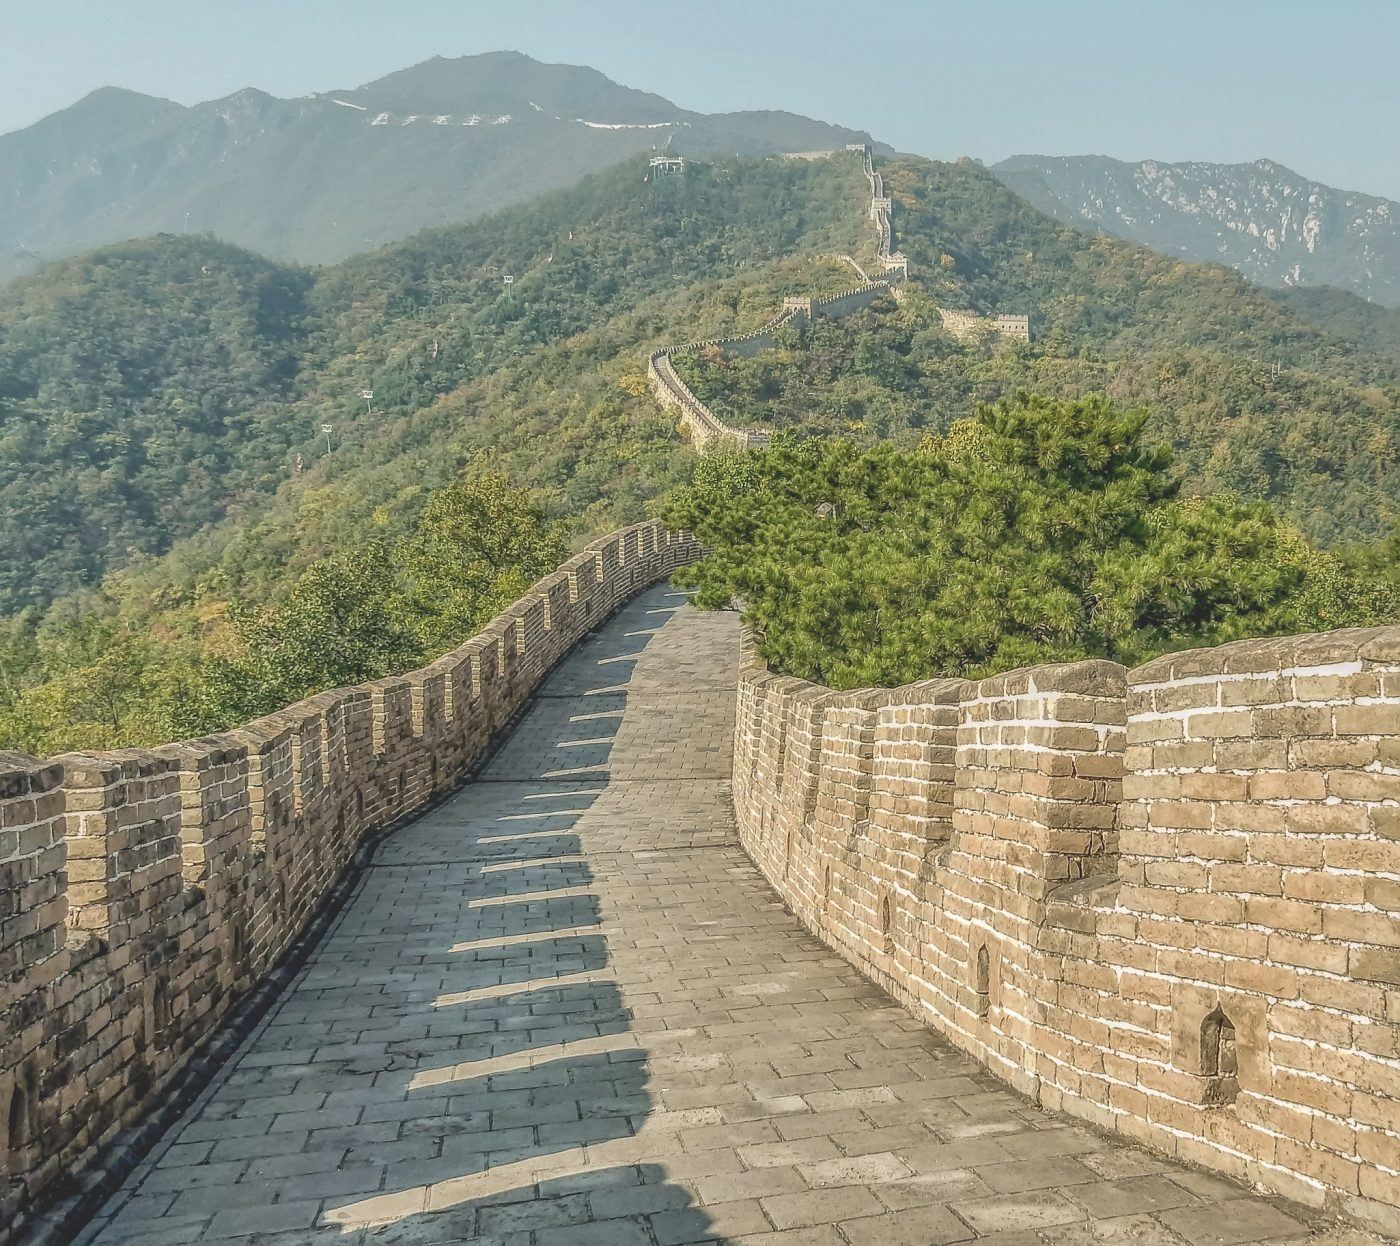 distance view of Great Wall of China as seen from the top